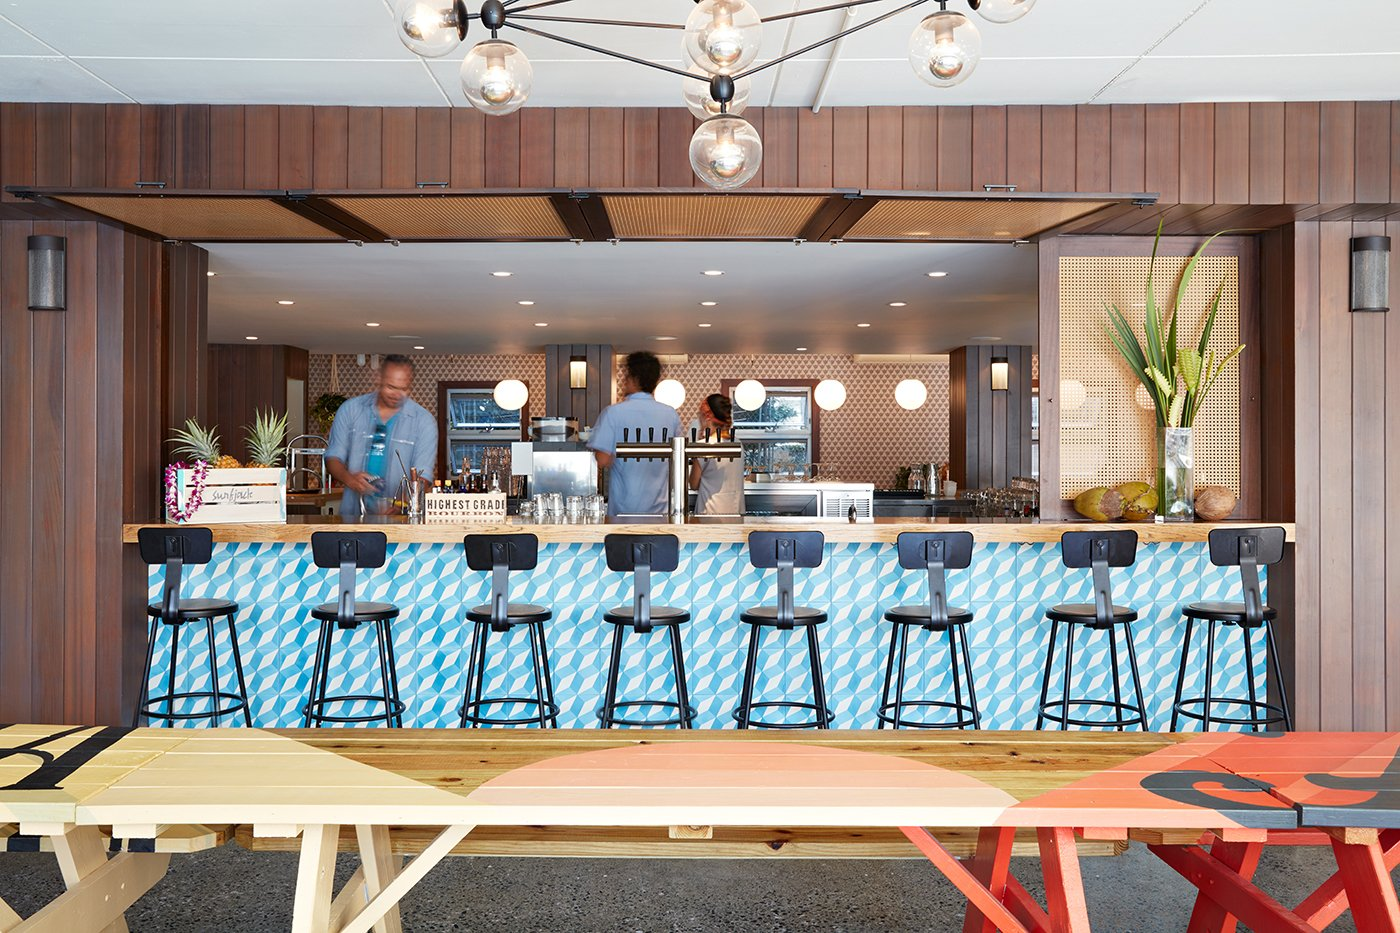 """As chef Ed Kenney's fourth eatery, Mahina & Sun's believes in, """"local first; organic whenever possible; with aloha always."""" The picnic tables next to the bar were hand-painted by local artist Jeff Gress. Tagged: Dining Room, Bar, Stools, Pendant Lighting, and Table.  Photo 6 of 14 in This Surf-Inspired Hotel Celebrates Waikiki's Creative Spirit and its Midcentury Roots"""